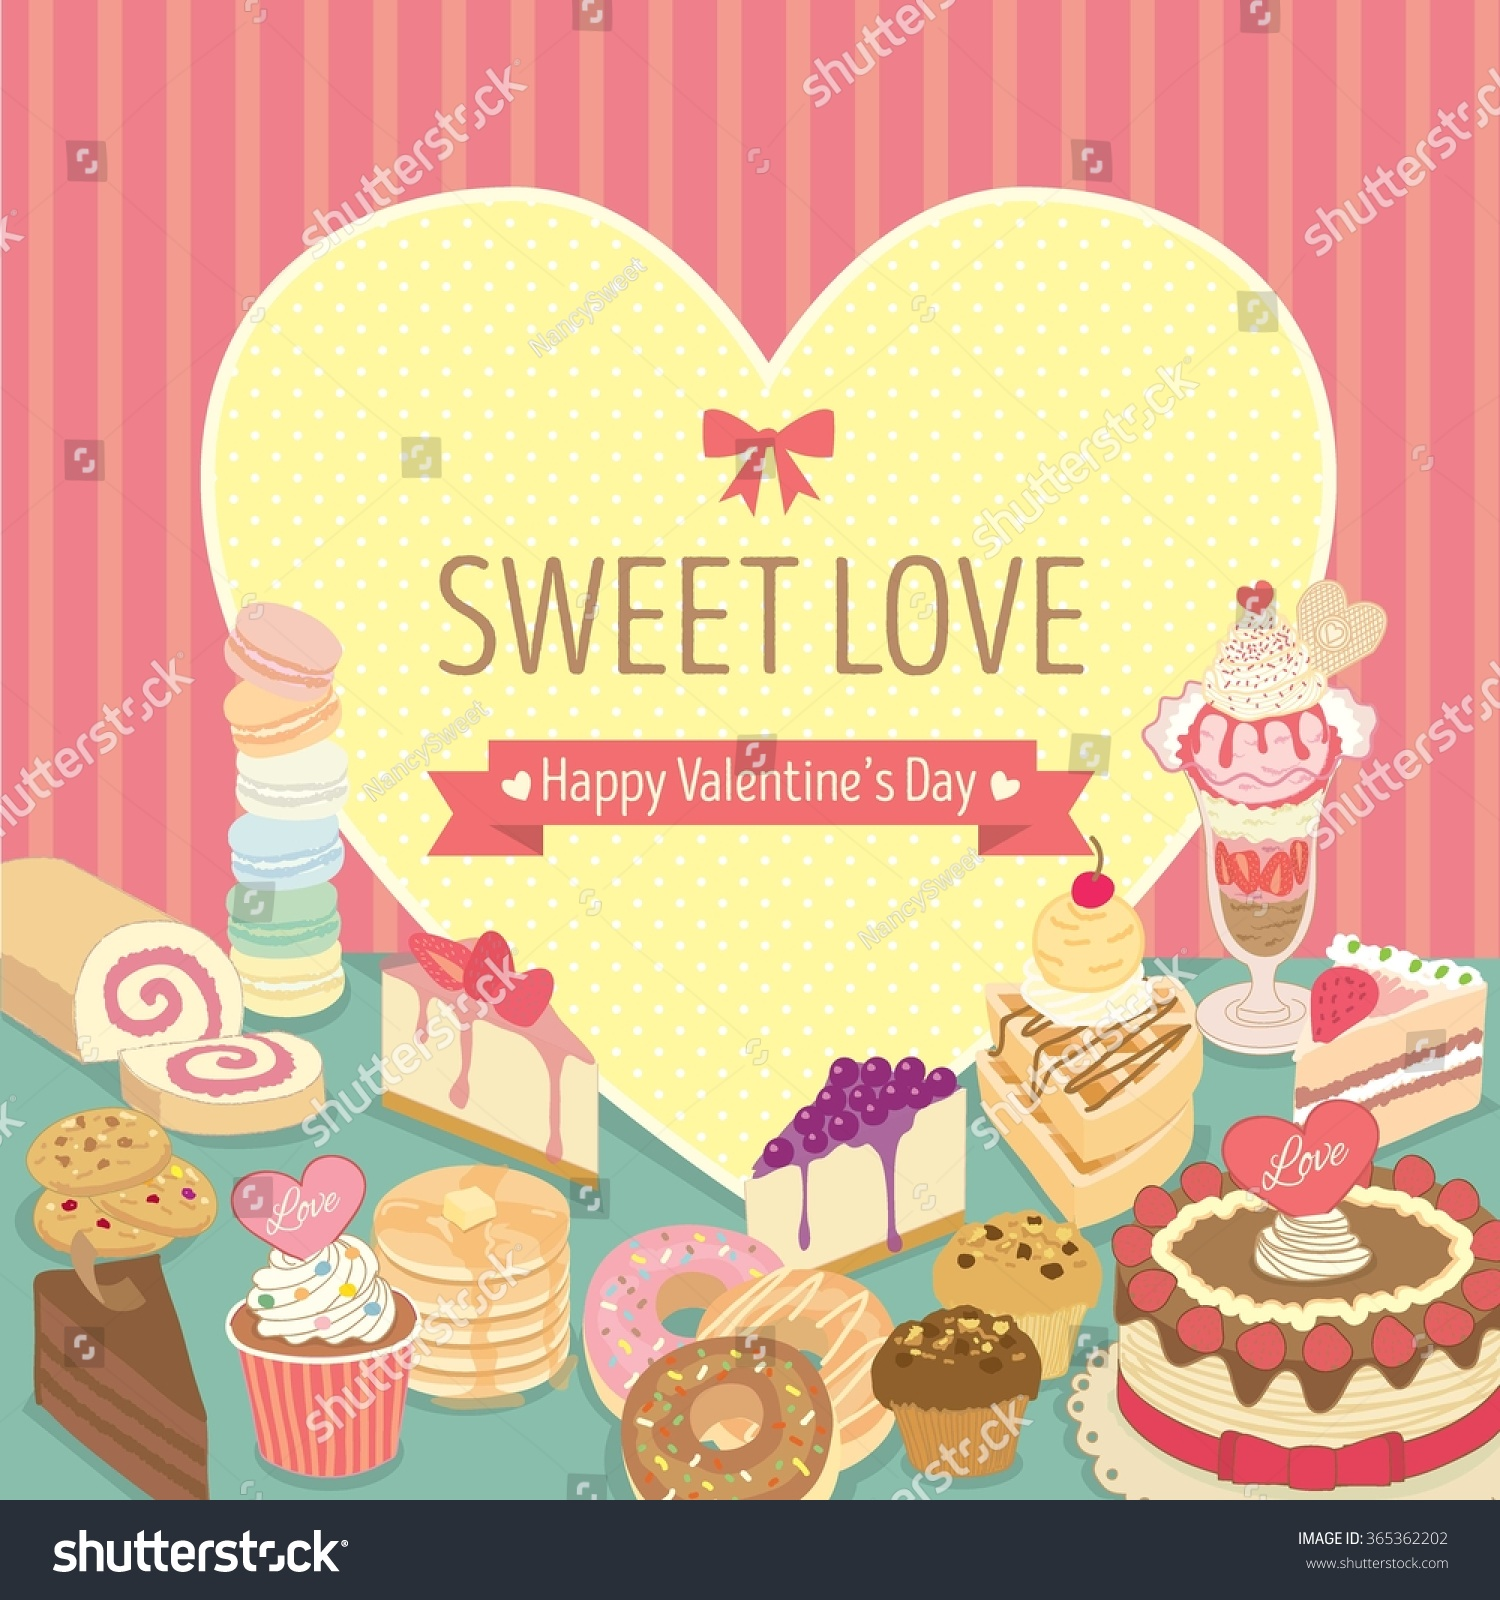 vector lover dessert valentines daybakery cafe stock vector